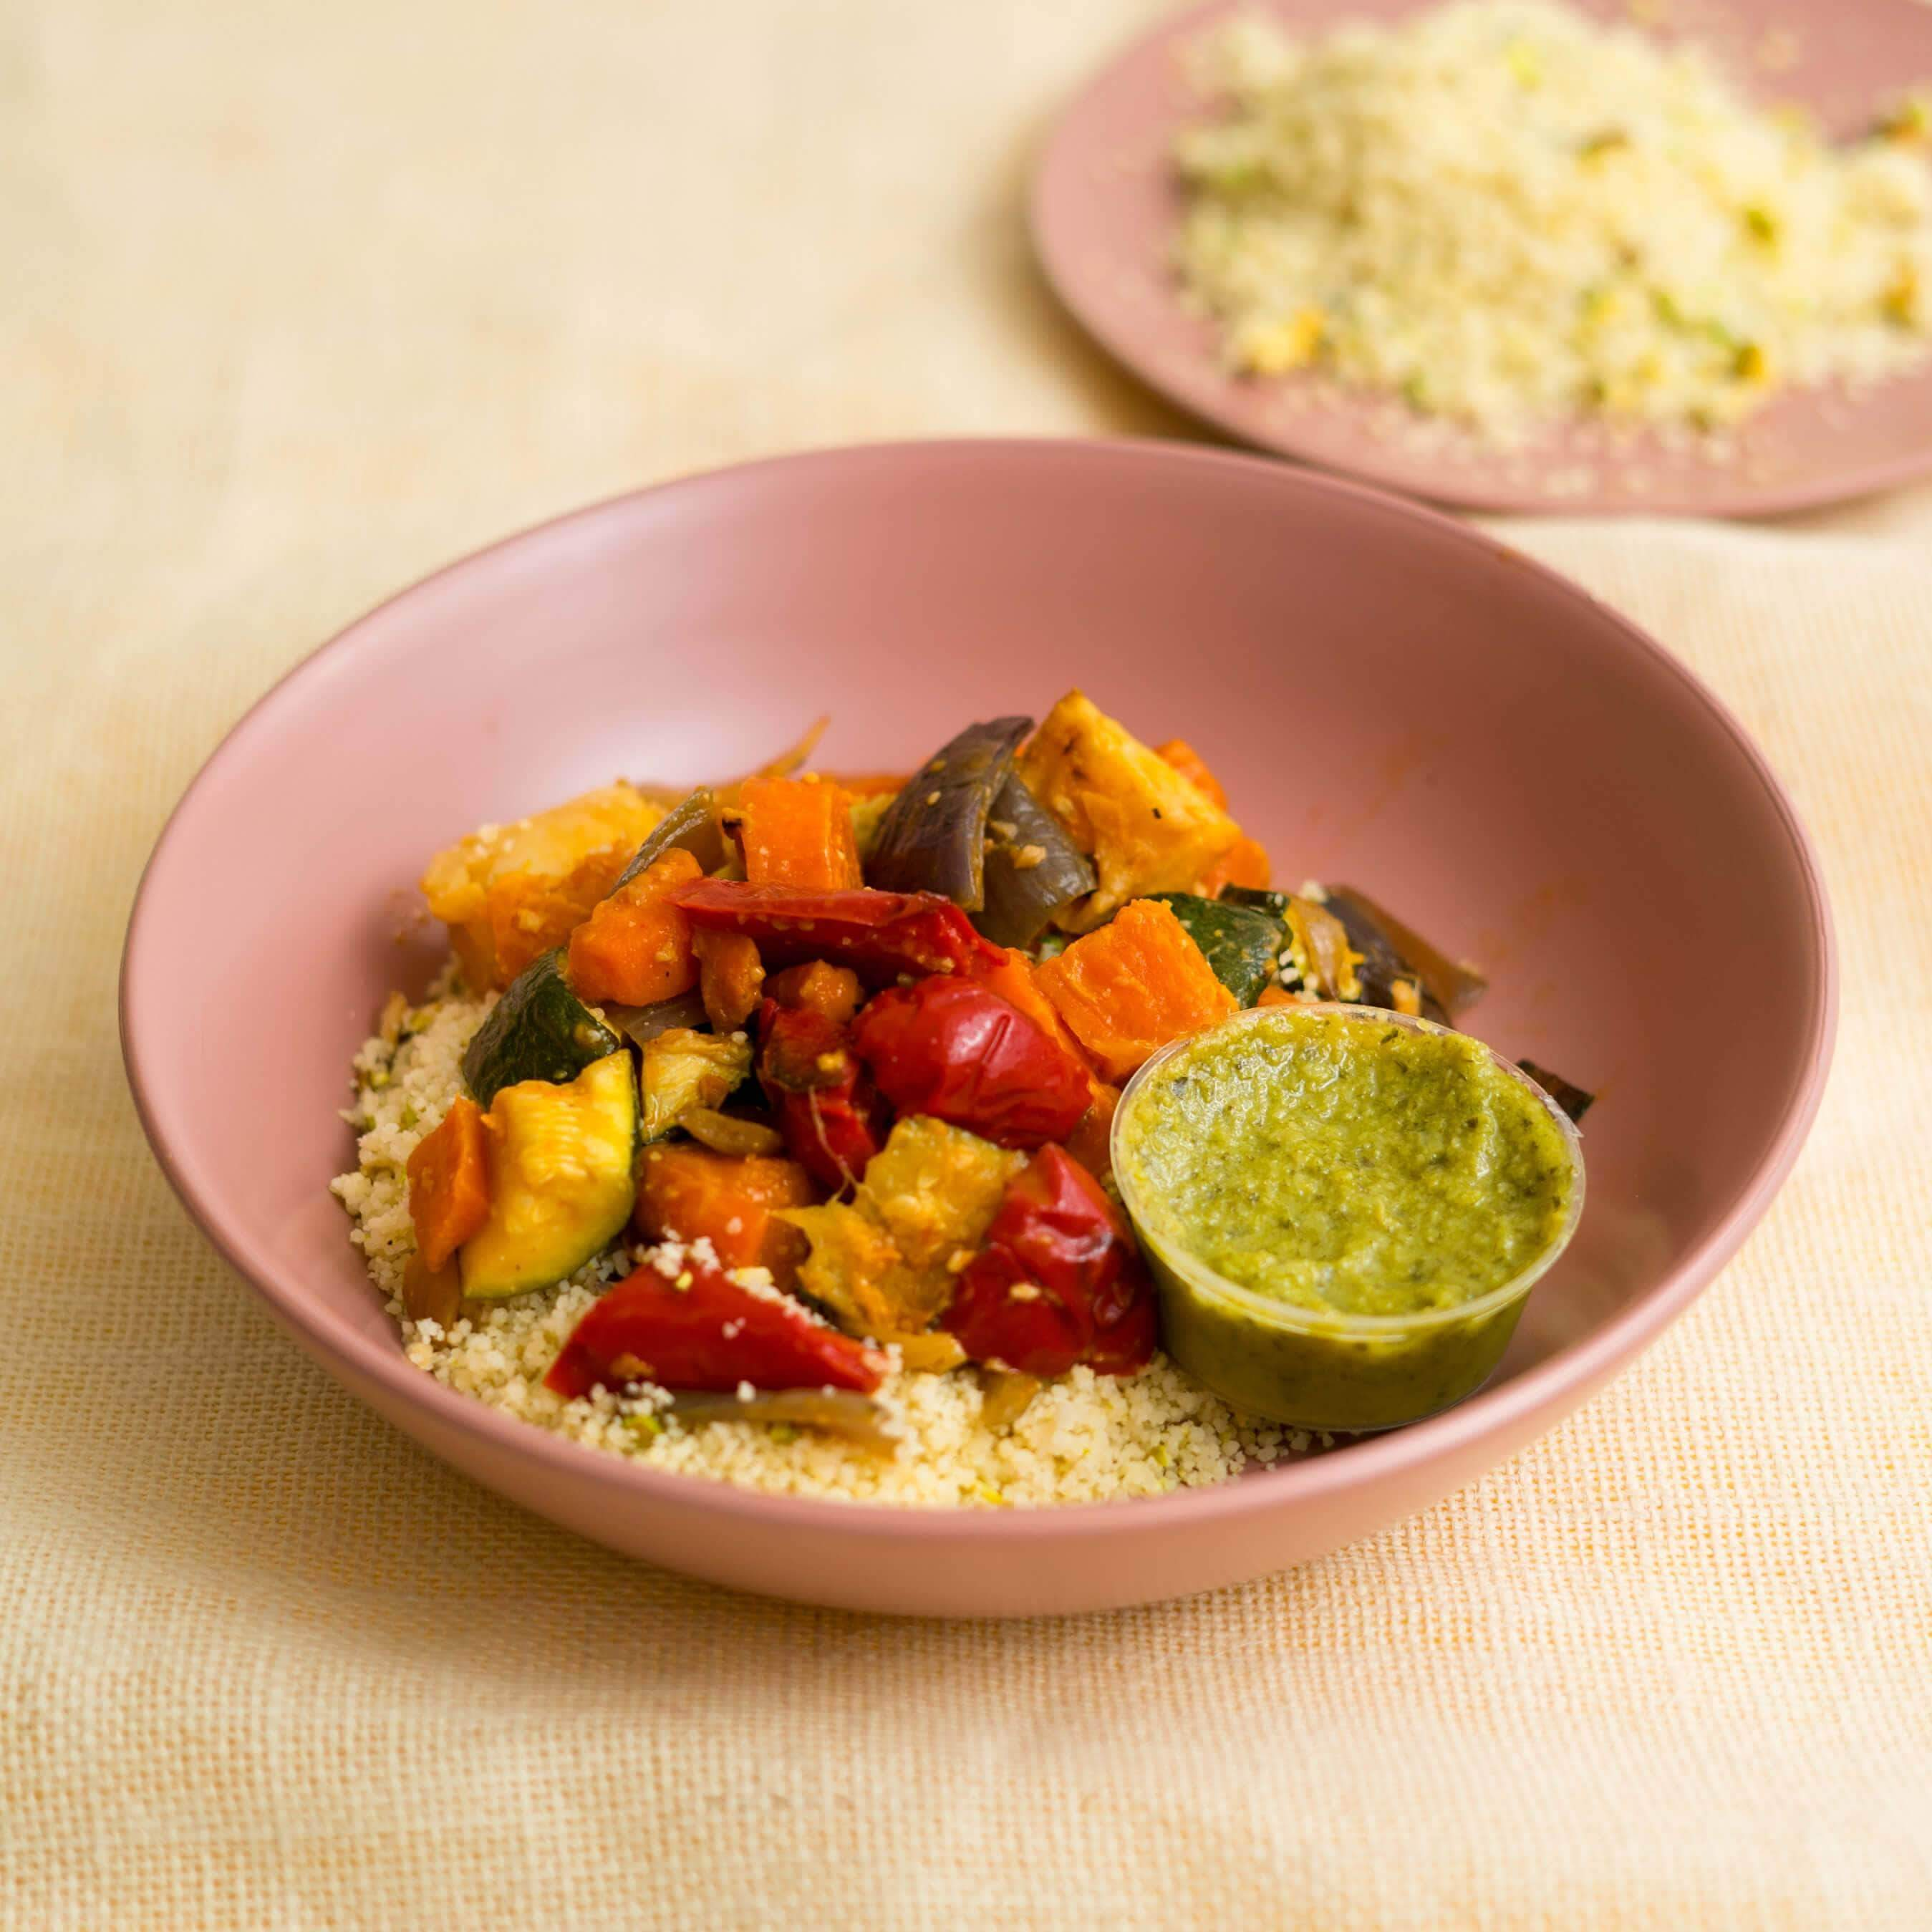 Roasted Vegetables with Cous Cous - Fresh Meals 2 U